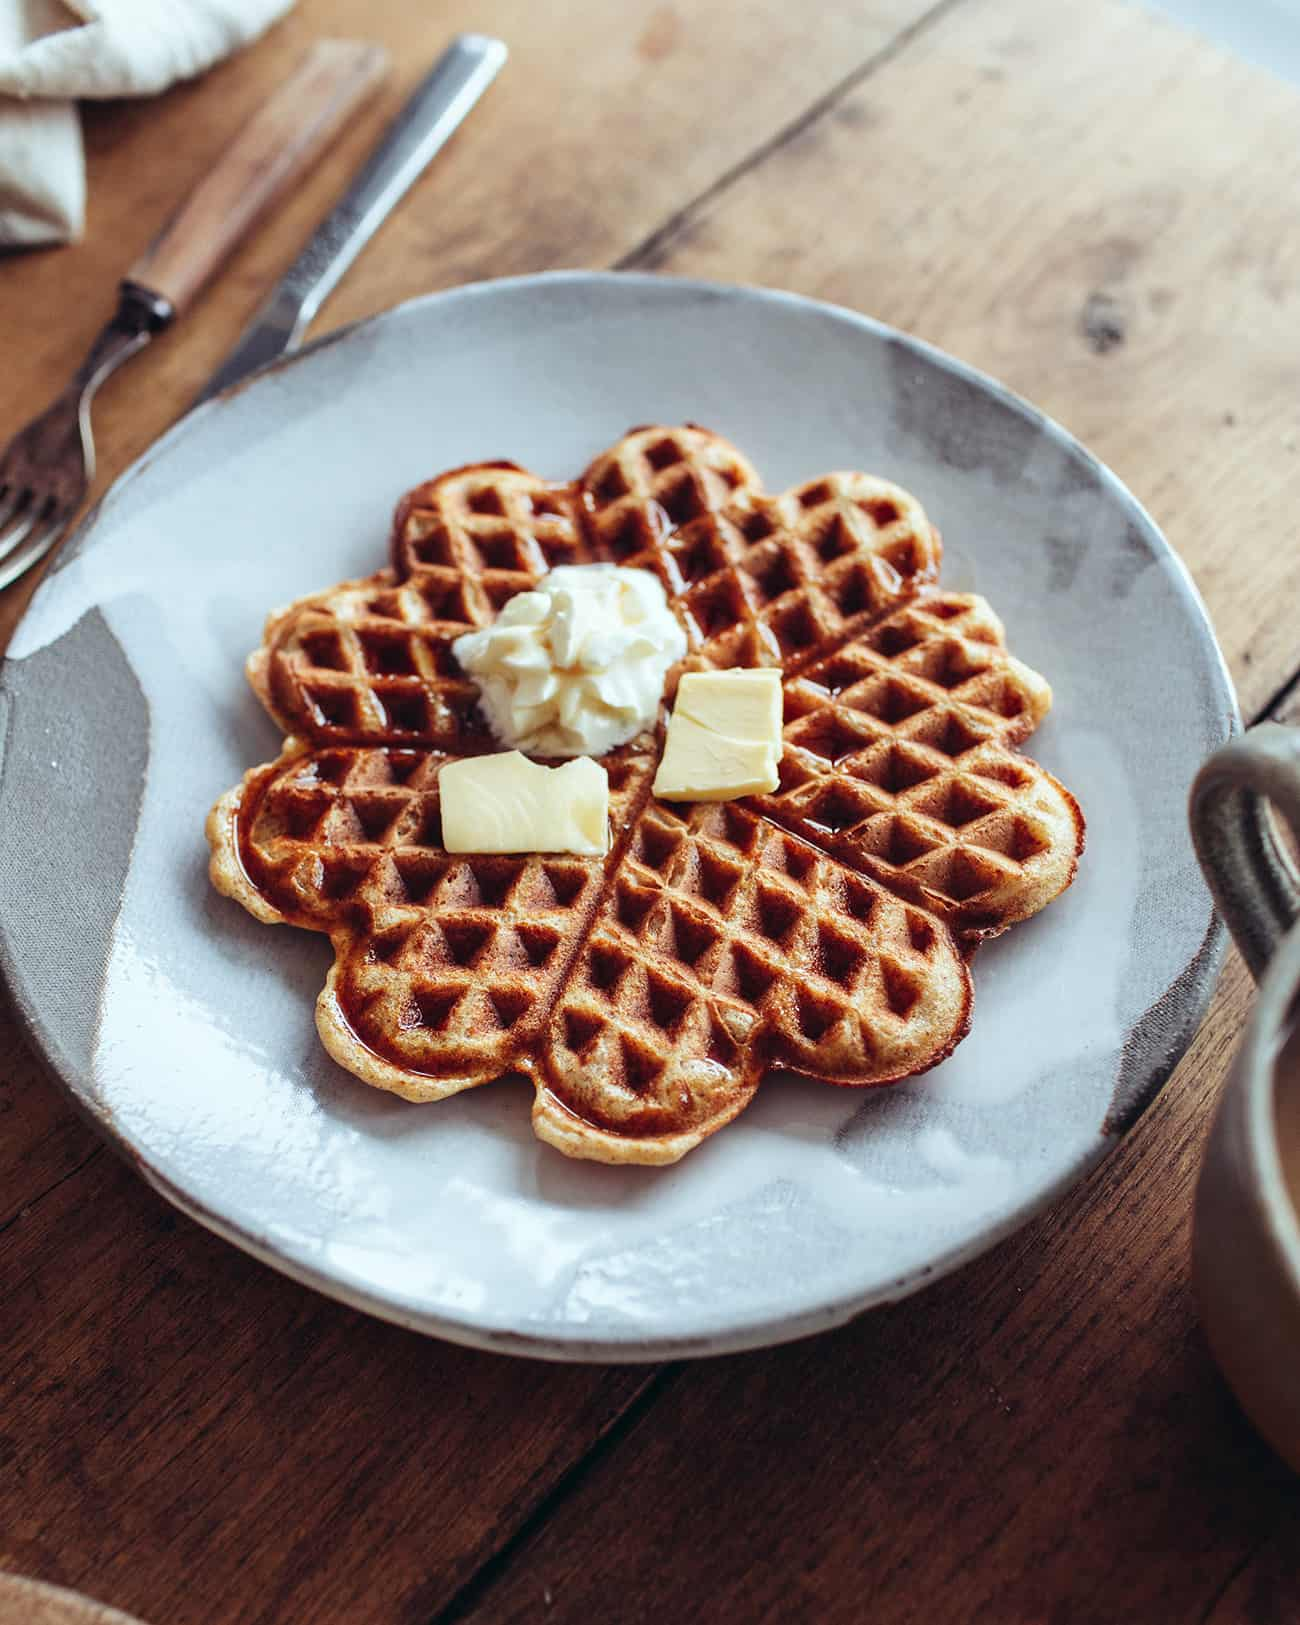 a plate with a crispy vegan waffle topped with soy cream and vegan butter